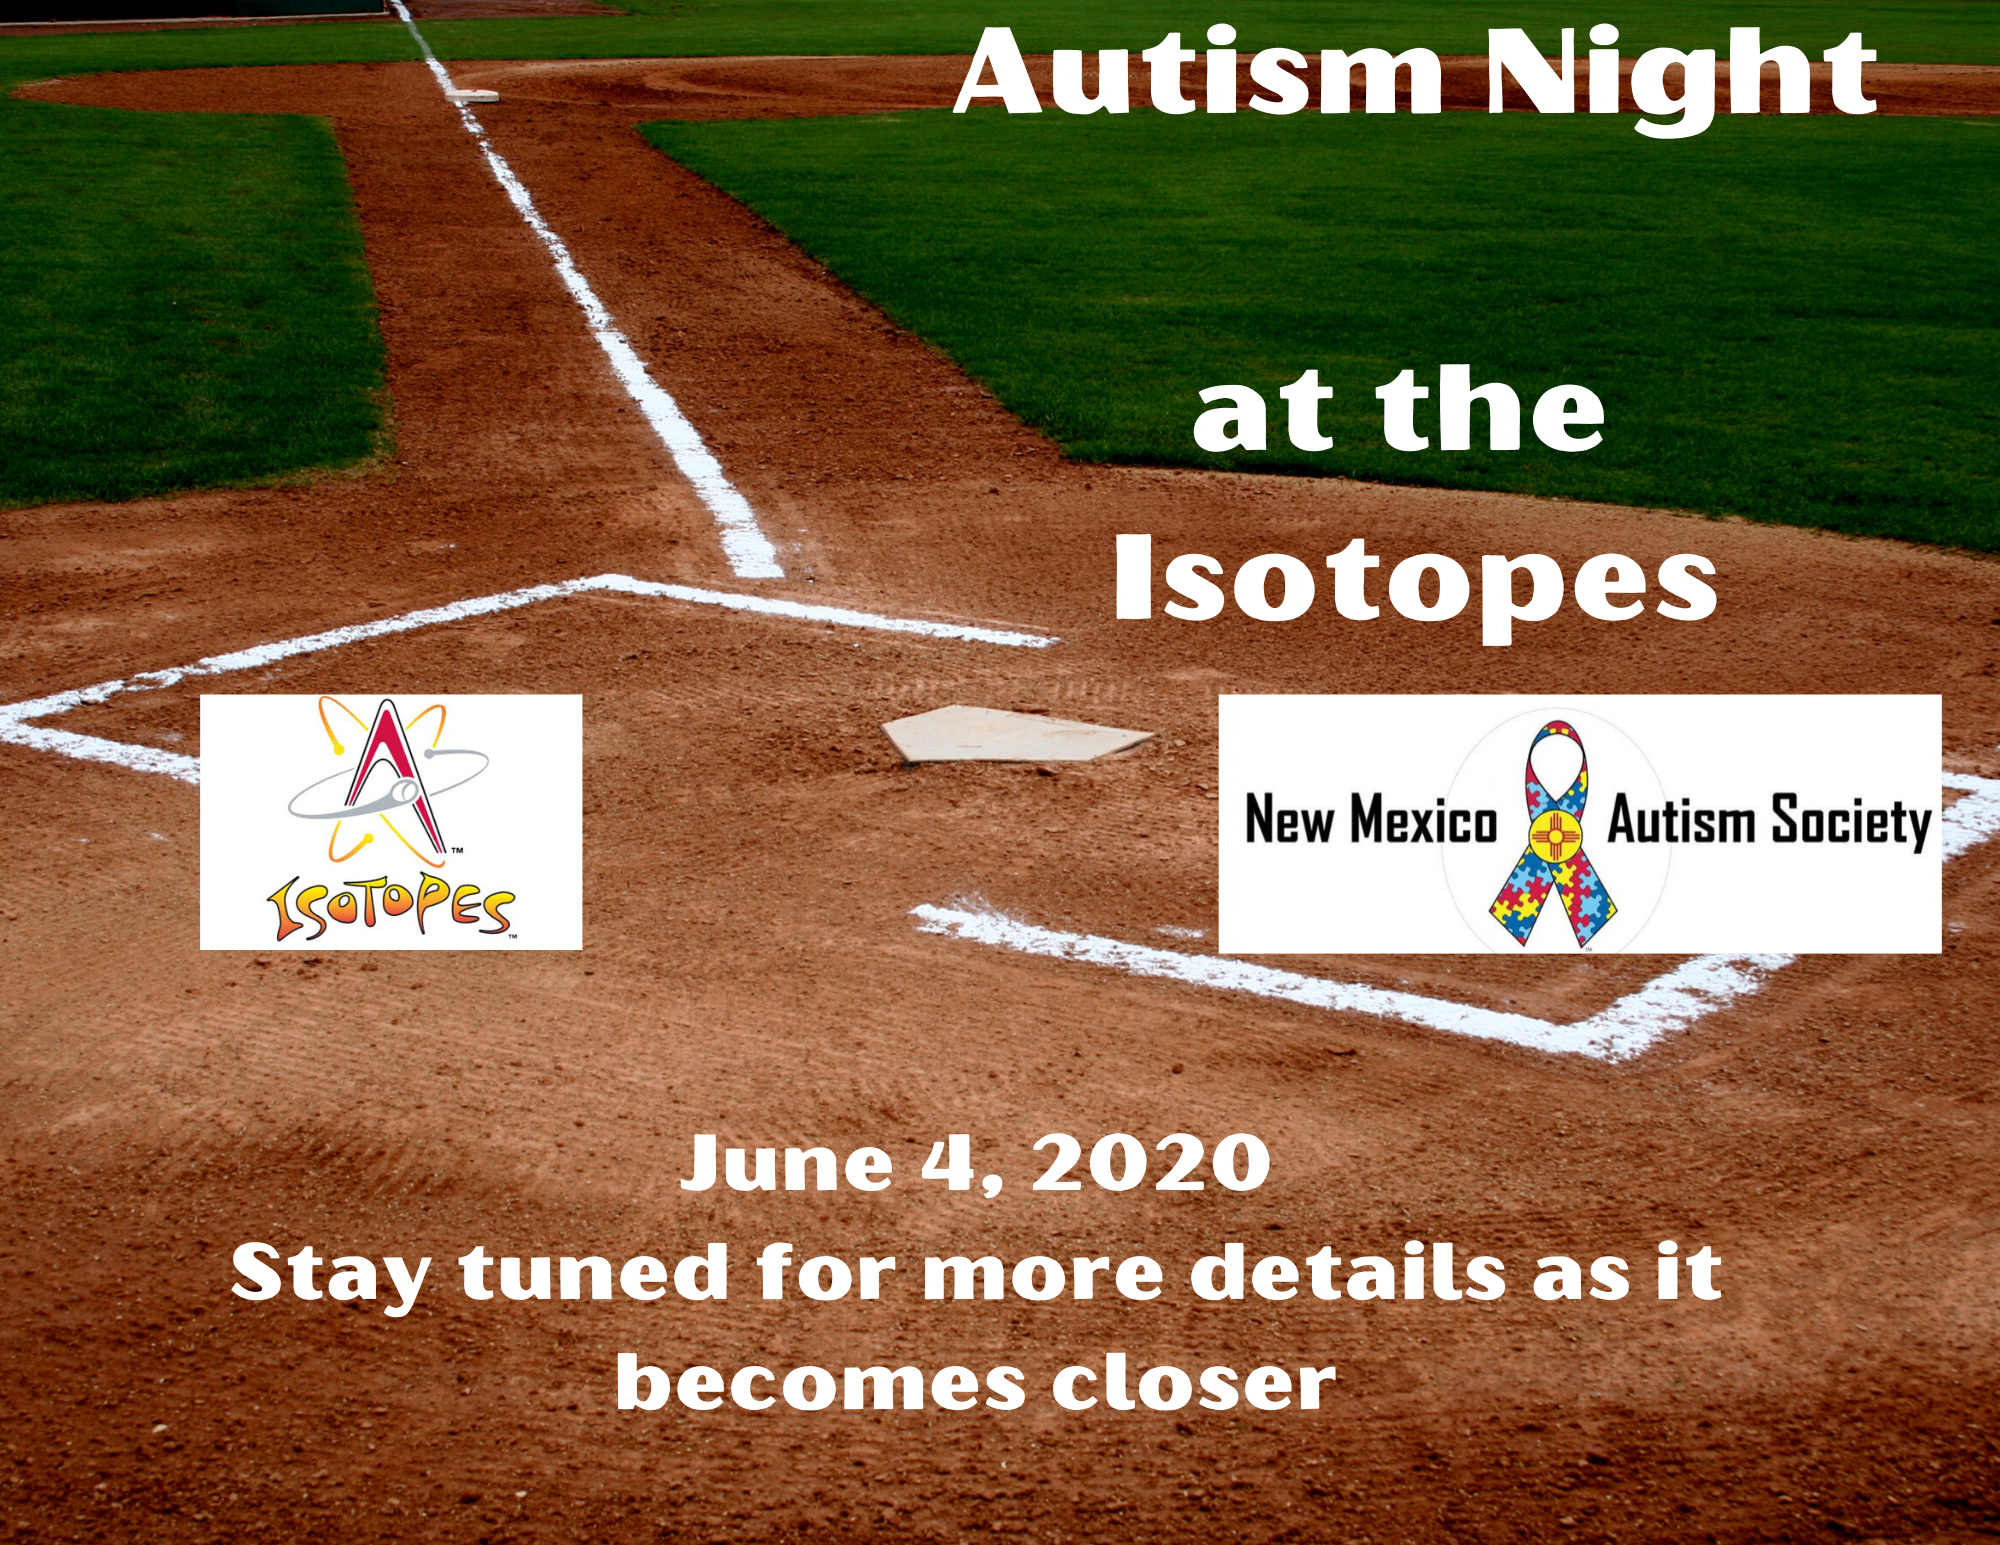 Autism Night at the Isotopes Image